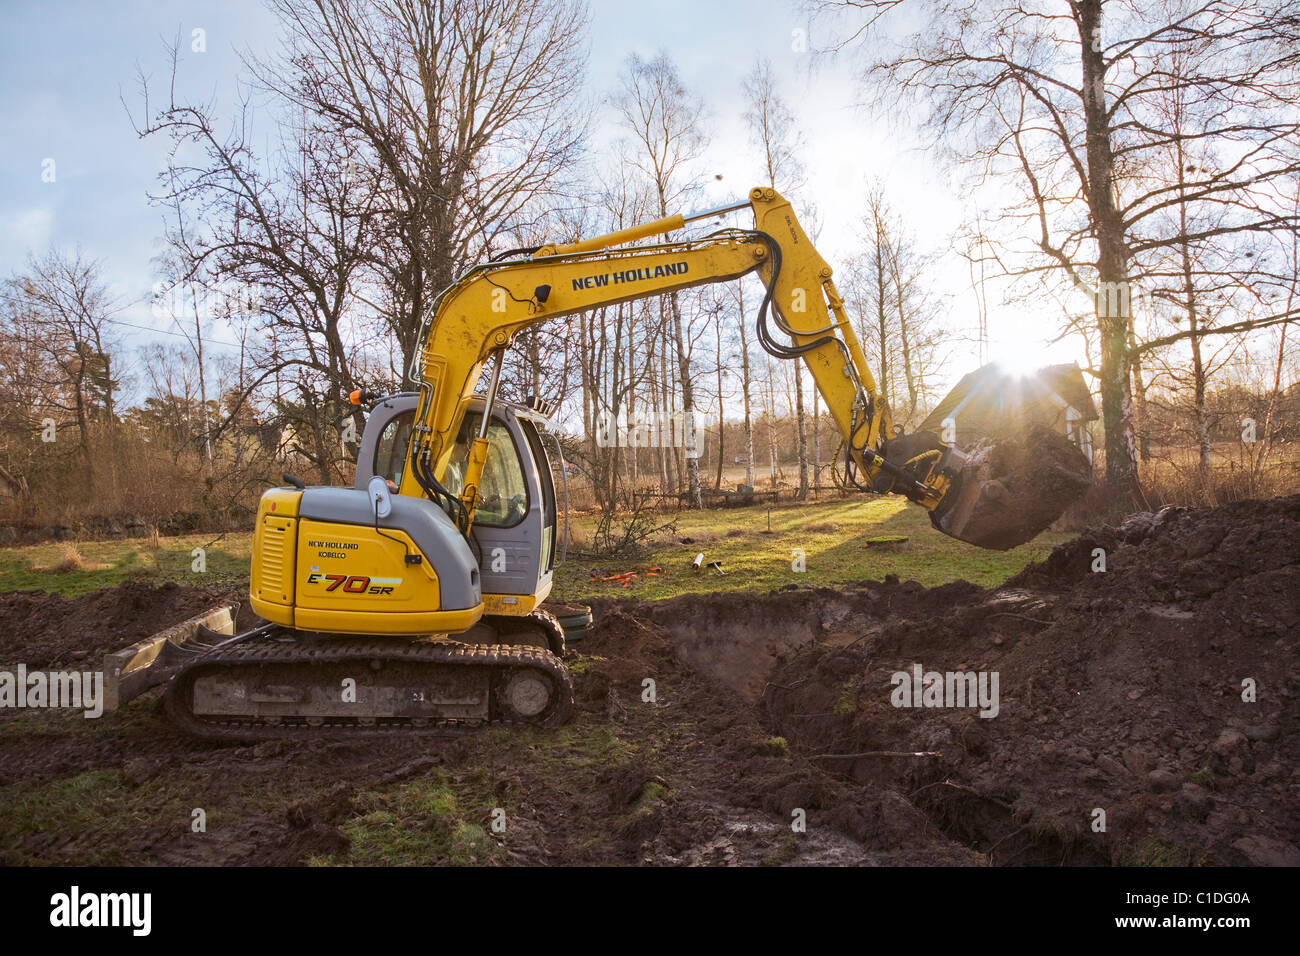 The sun rising behind a New Holland excavator digging up mud in a rural garden. - Stock Image